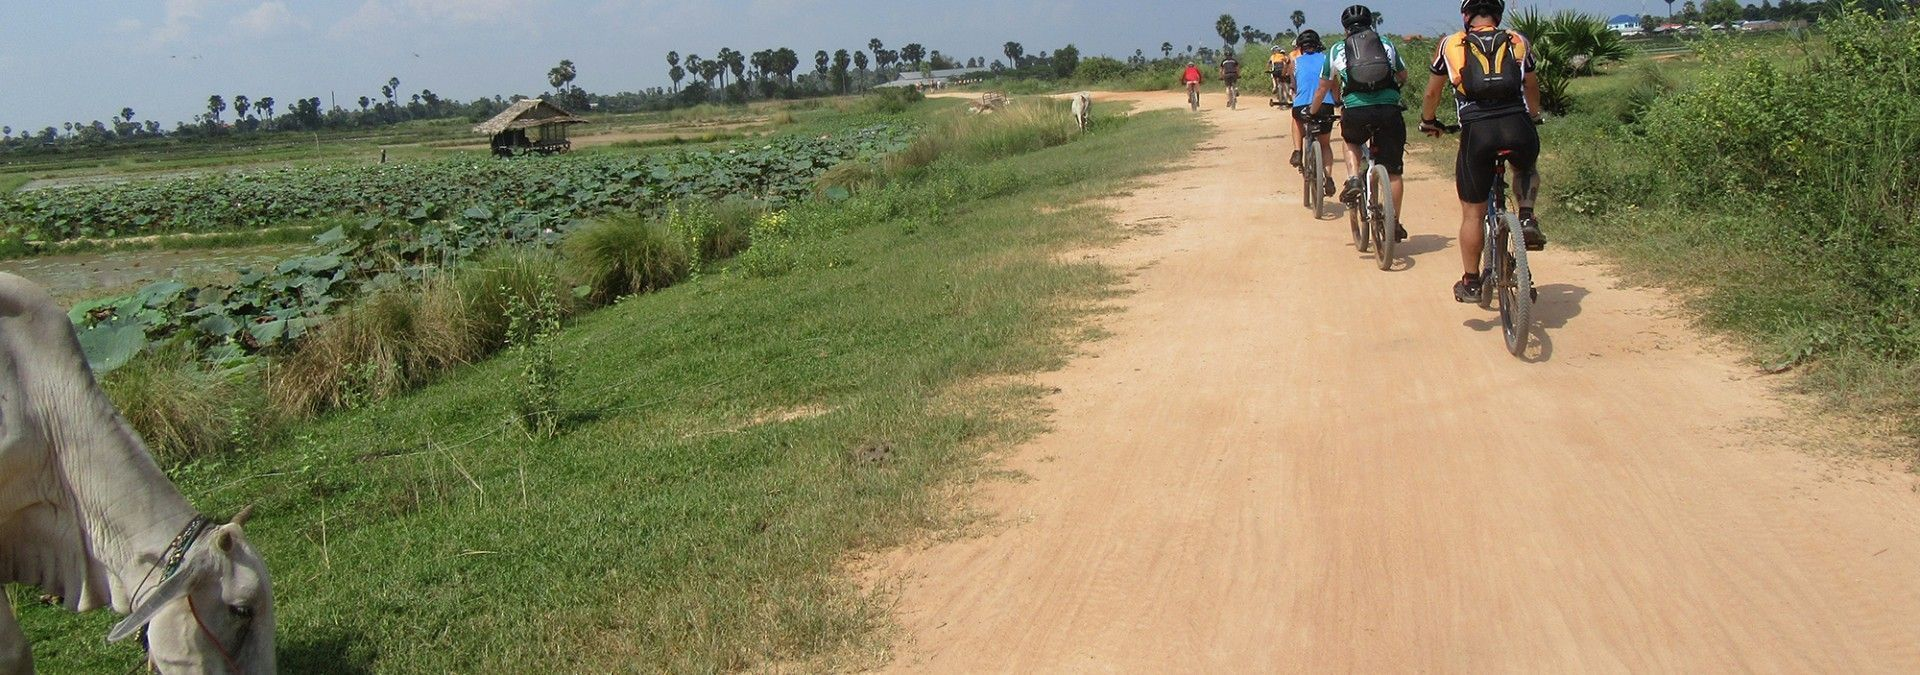 Cycling_unpaved_roads_Cambodia.jpg